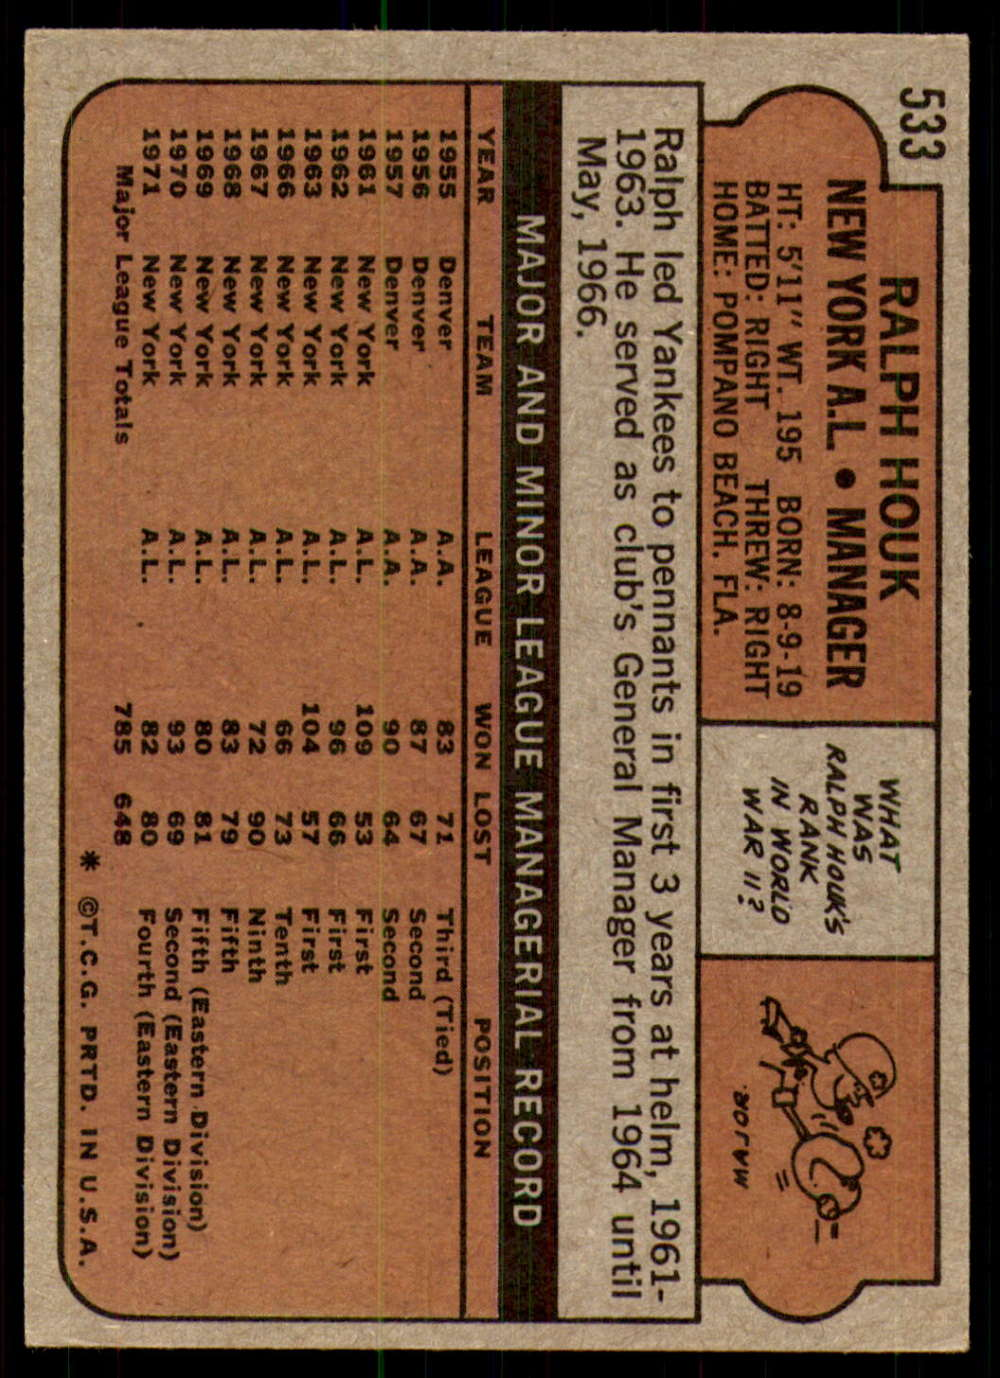 1972-Topps-Baseball-Set-497-787-Pick-Your-Card-Each-Card-Scanned-Front-amp-Back thumbnail 37